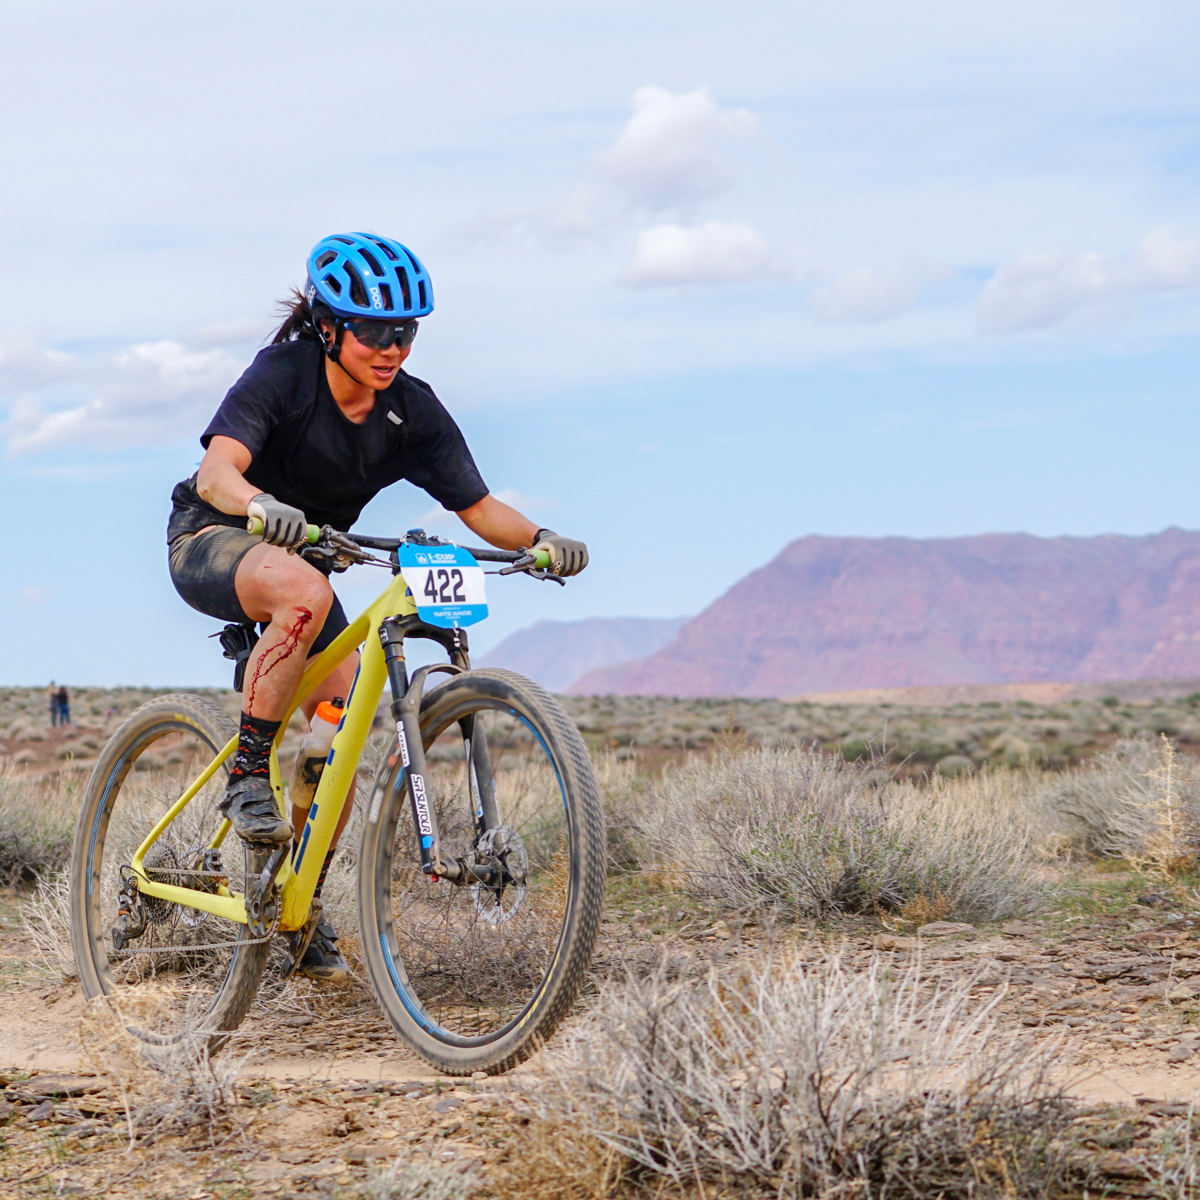 Evelyn Dong overcame a crash to take the win in the women's pro division of the Red Rock Desert Rampage Intermountain Cup on March 24, 2018. Photo by Matt Ohran